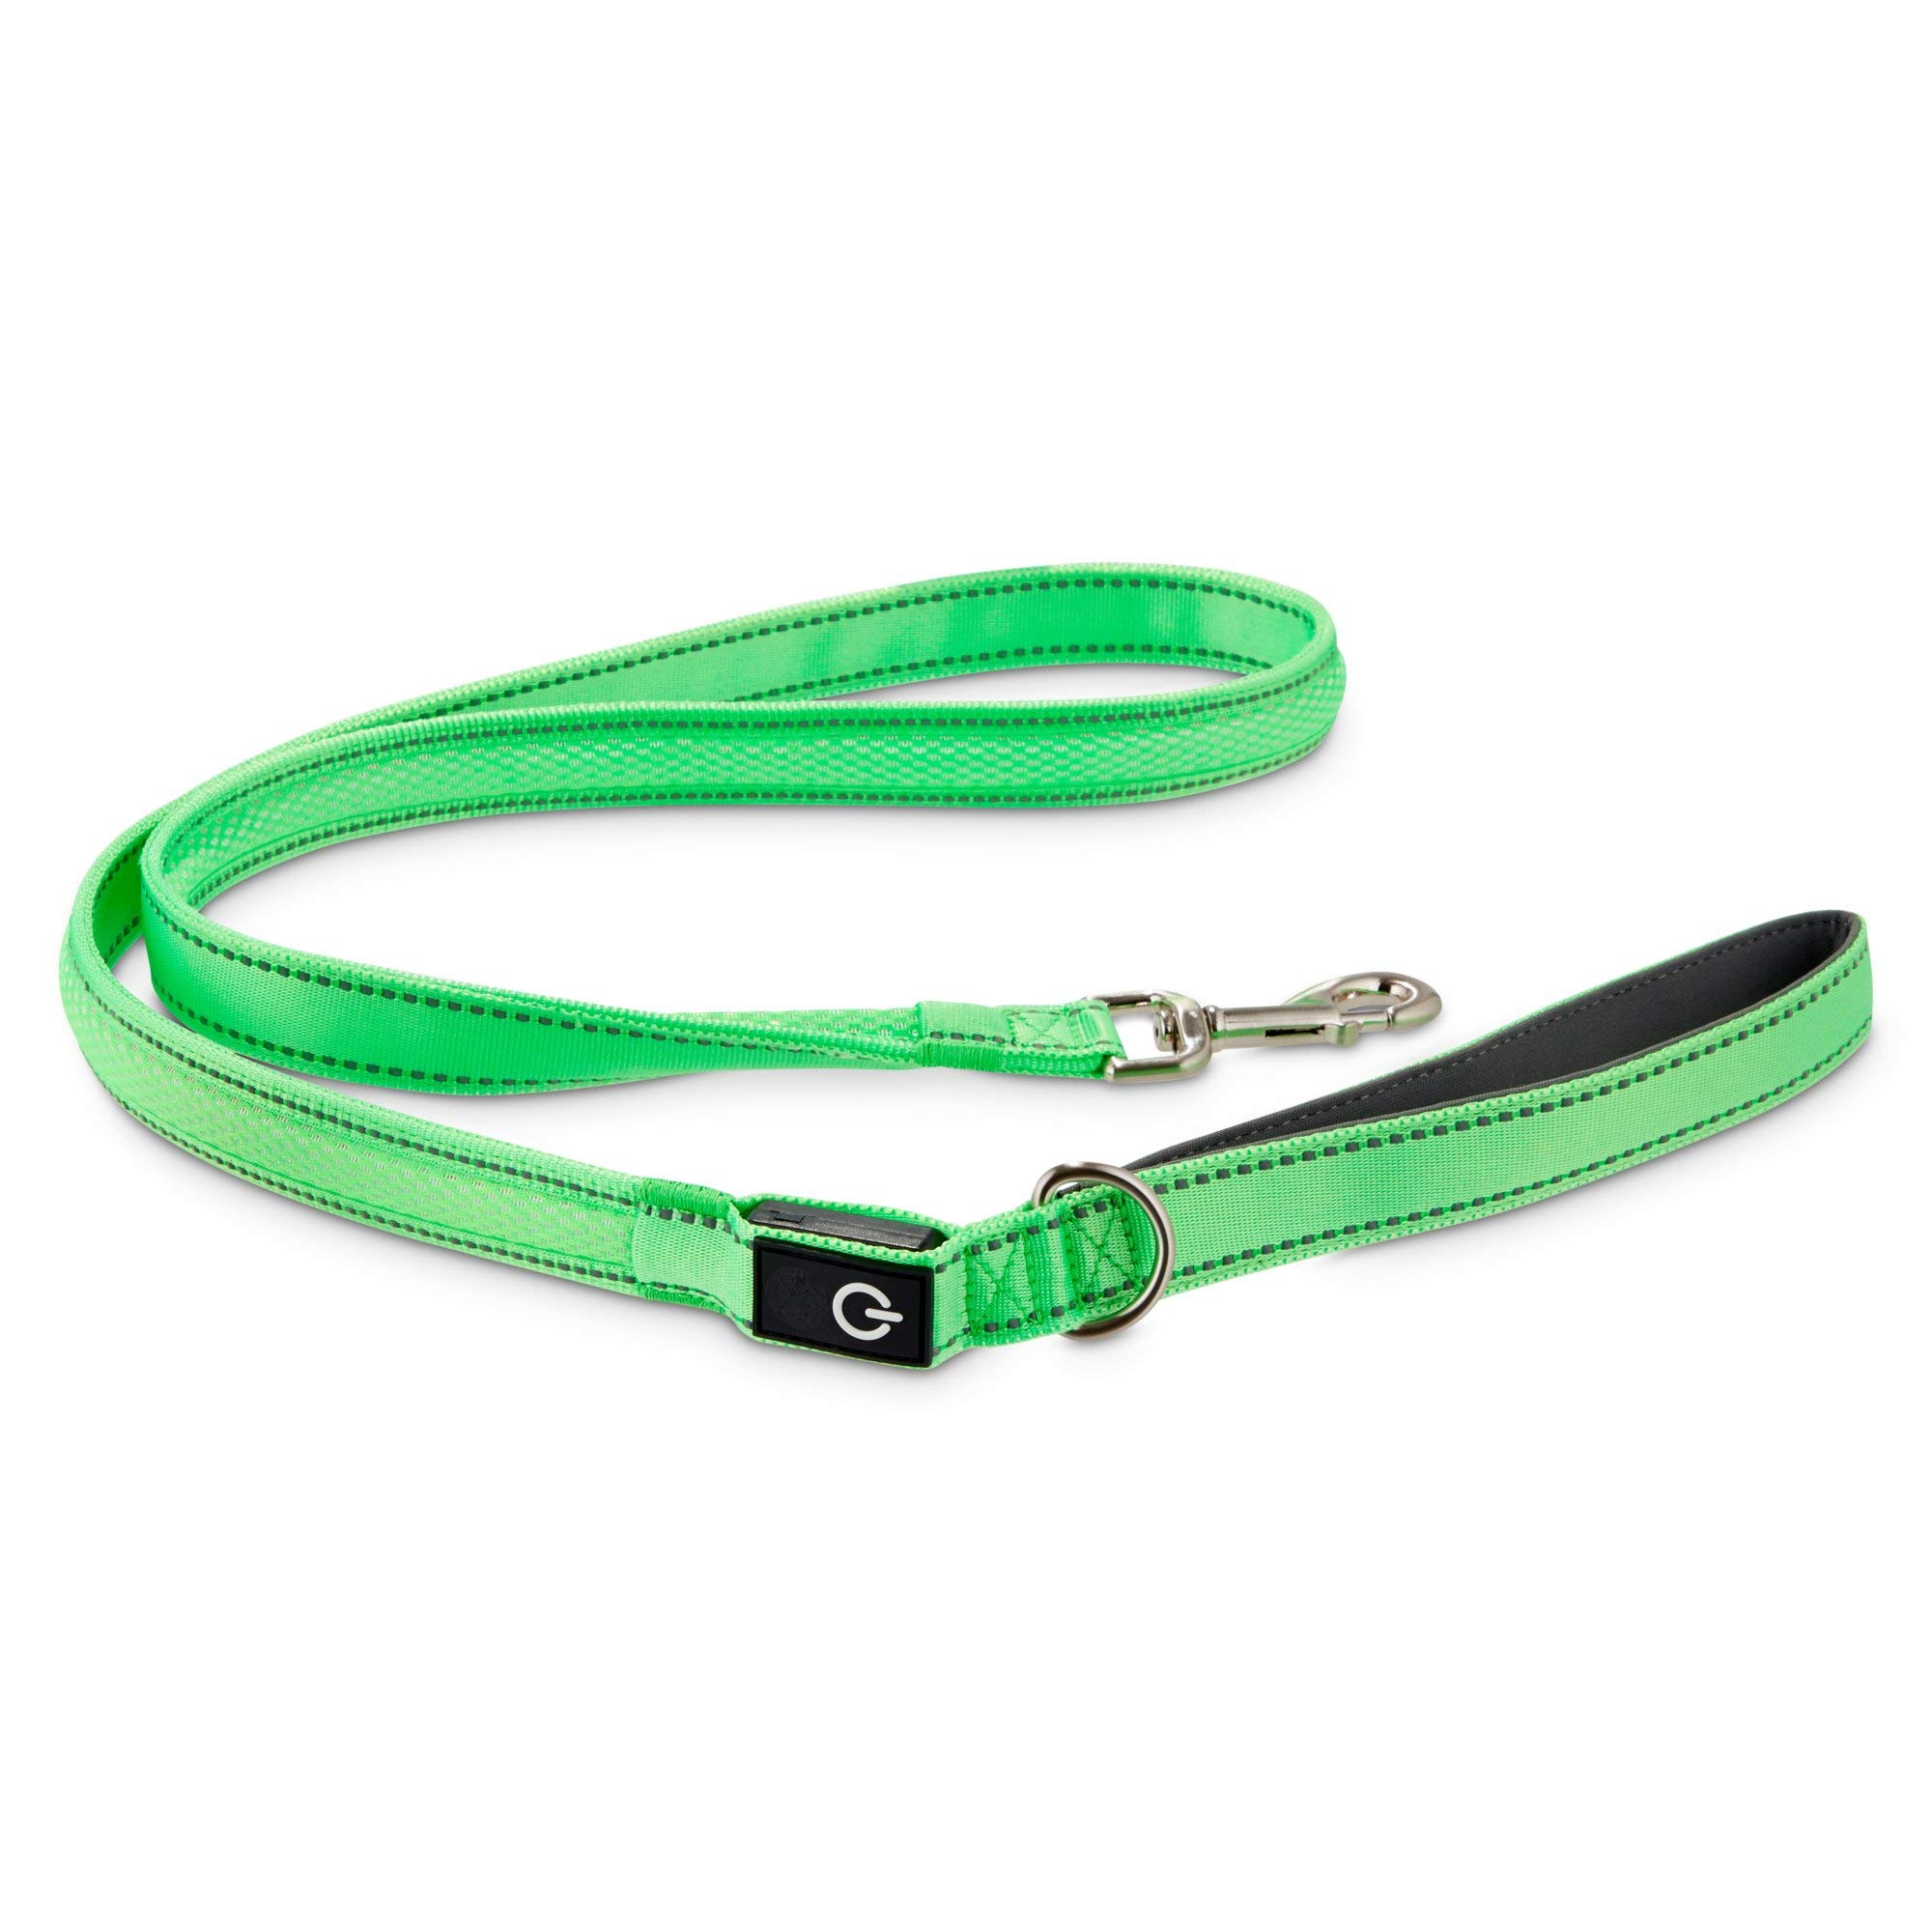 GOOD2GO Neon Green LED Light-Up Dog Leash, 5 ft. by GOOD2GO